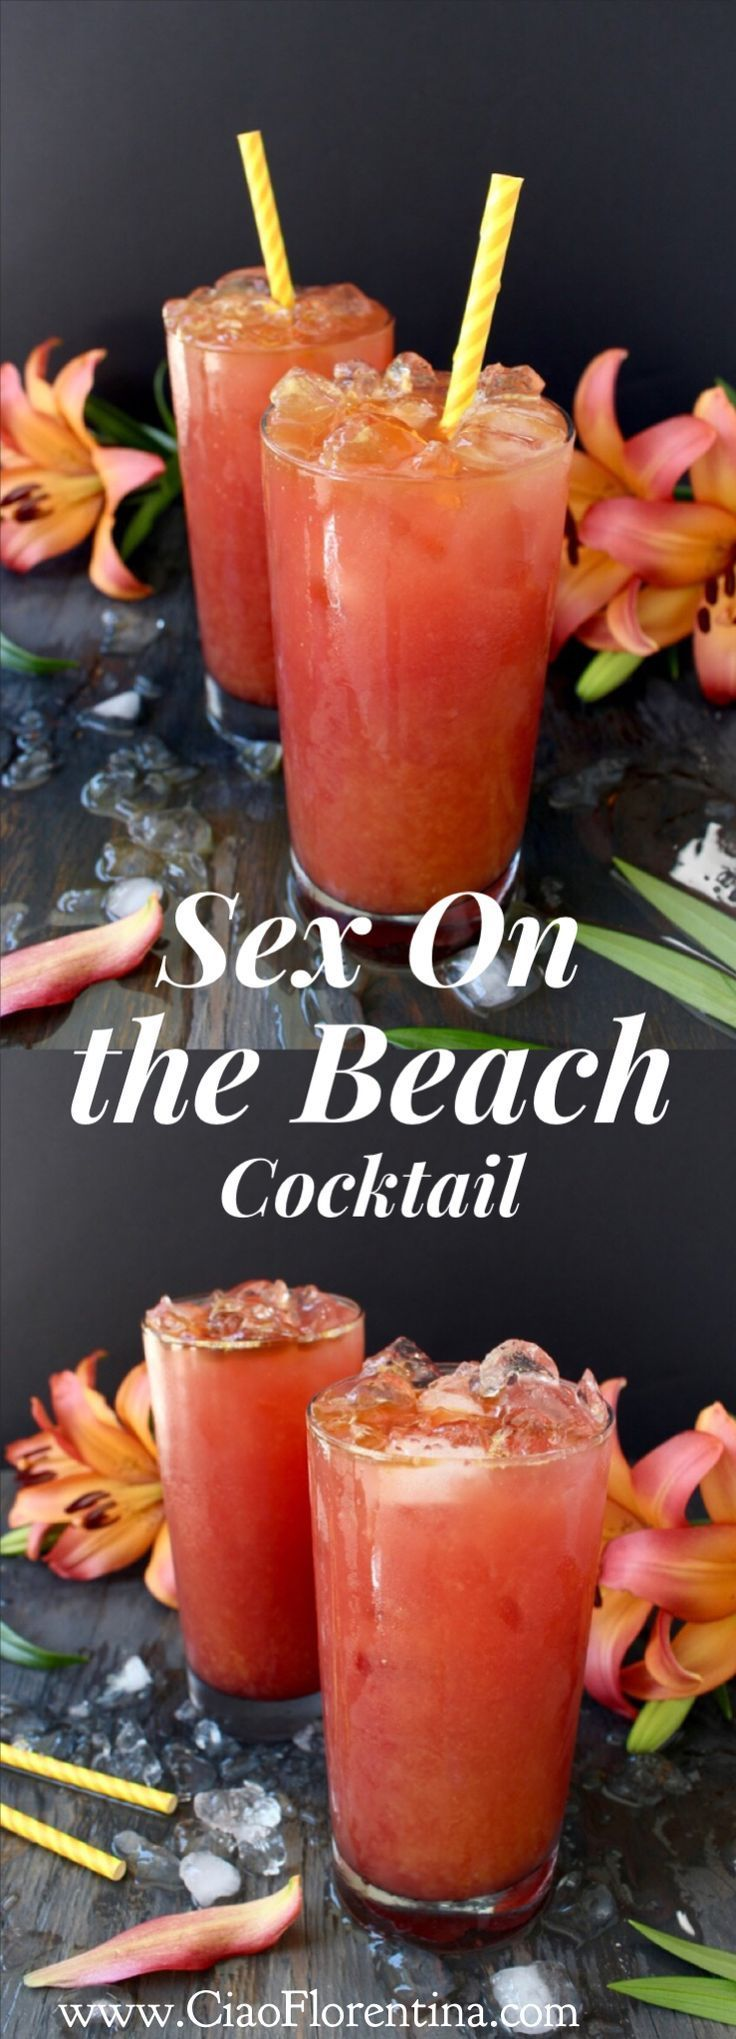 how to make cocktail sex on the beach